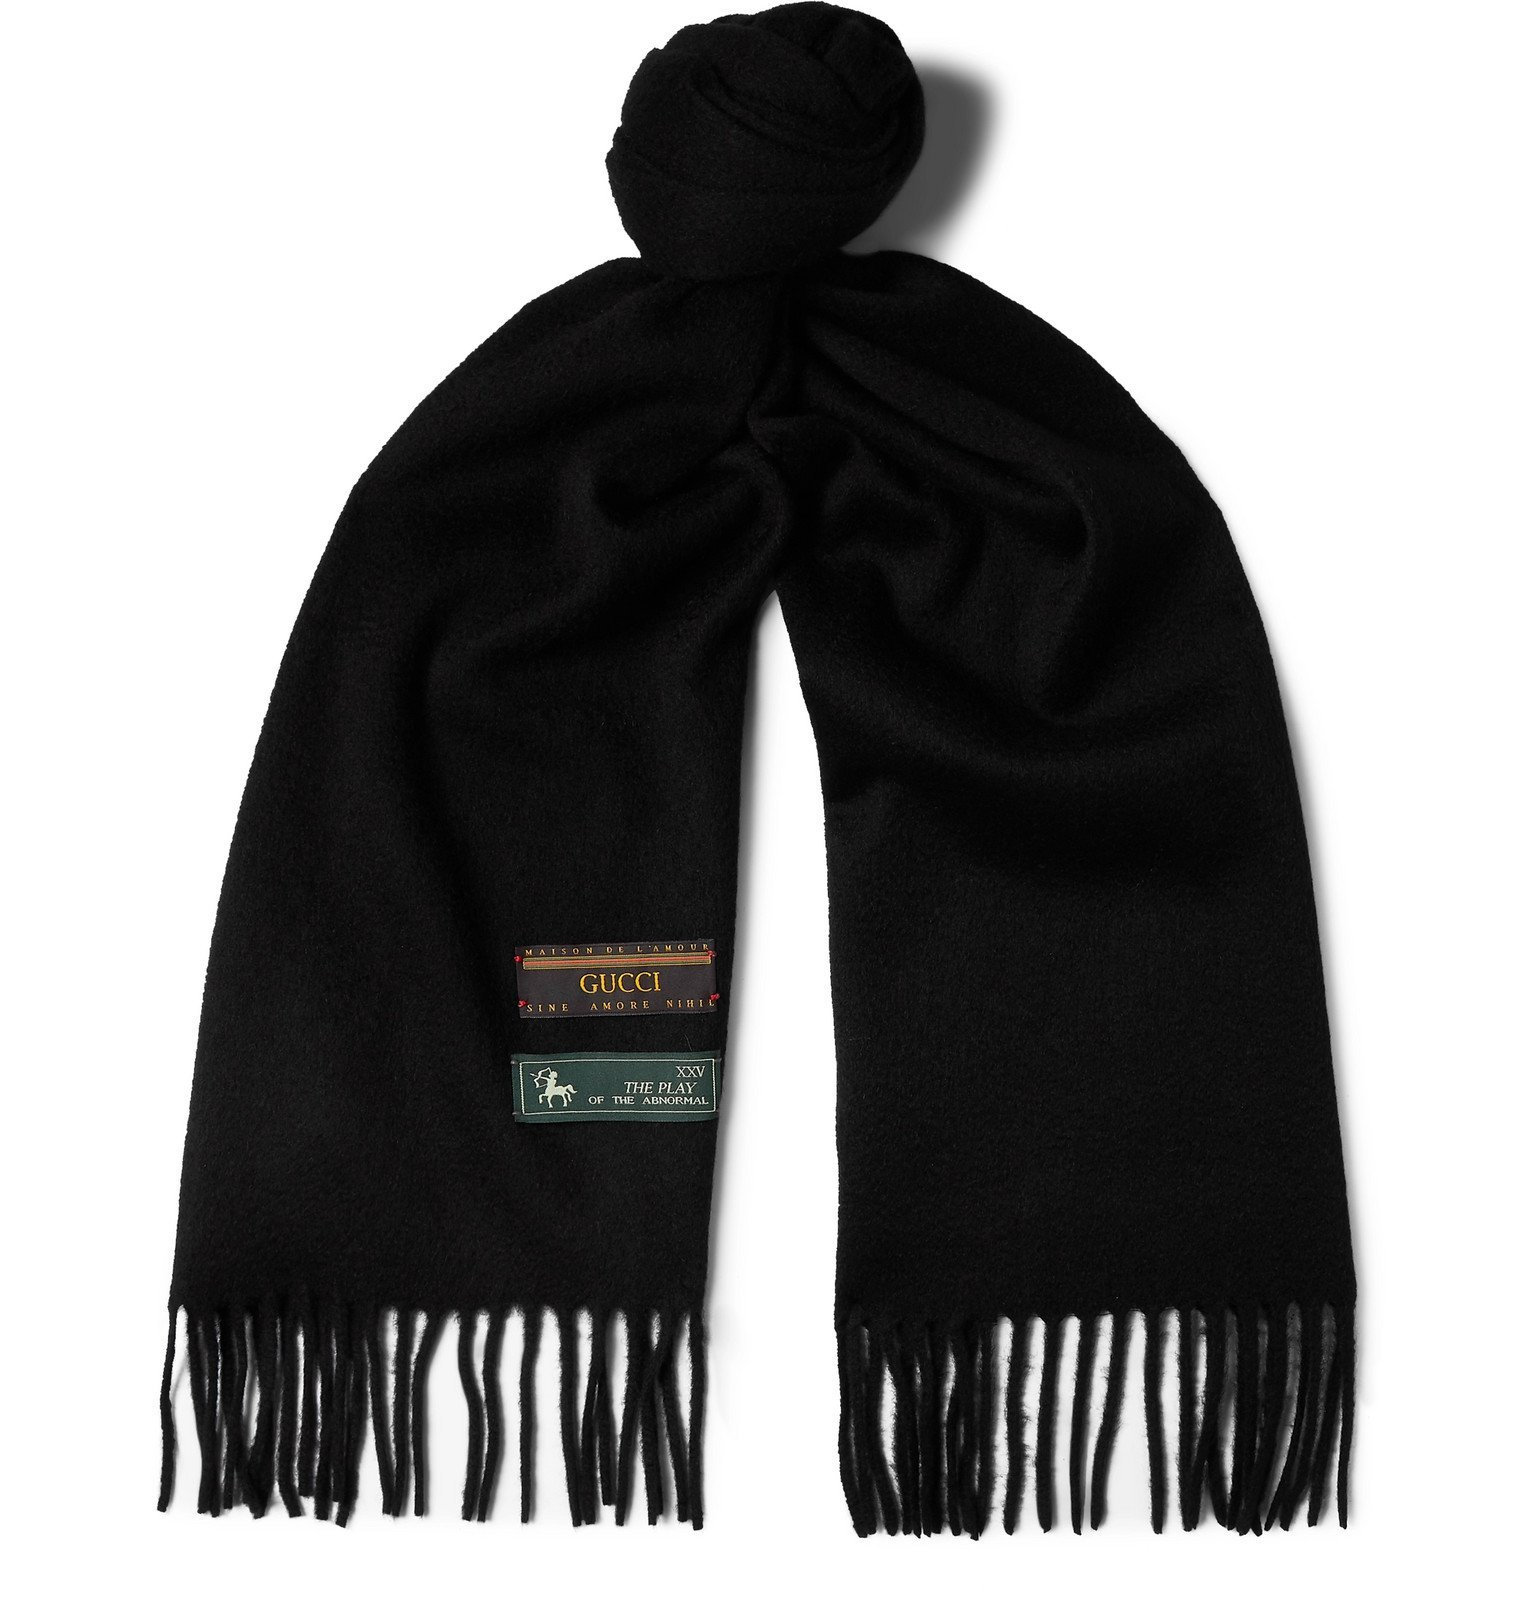 Gucci - Fringed Wool and Cashmere-Blend Scarf - Black